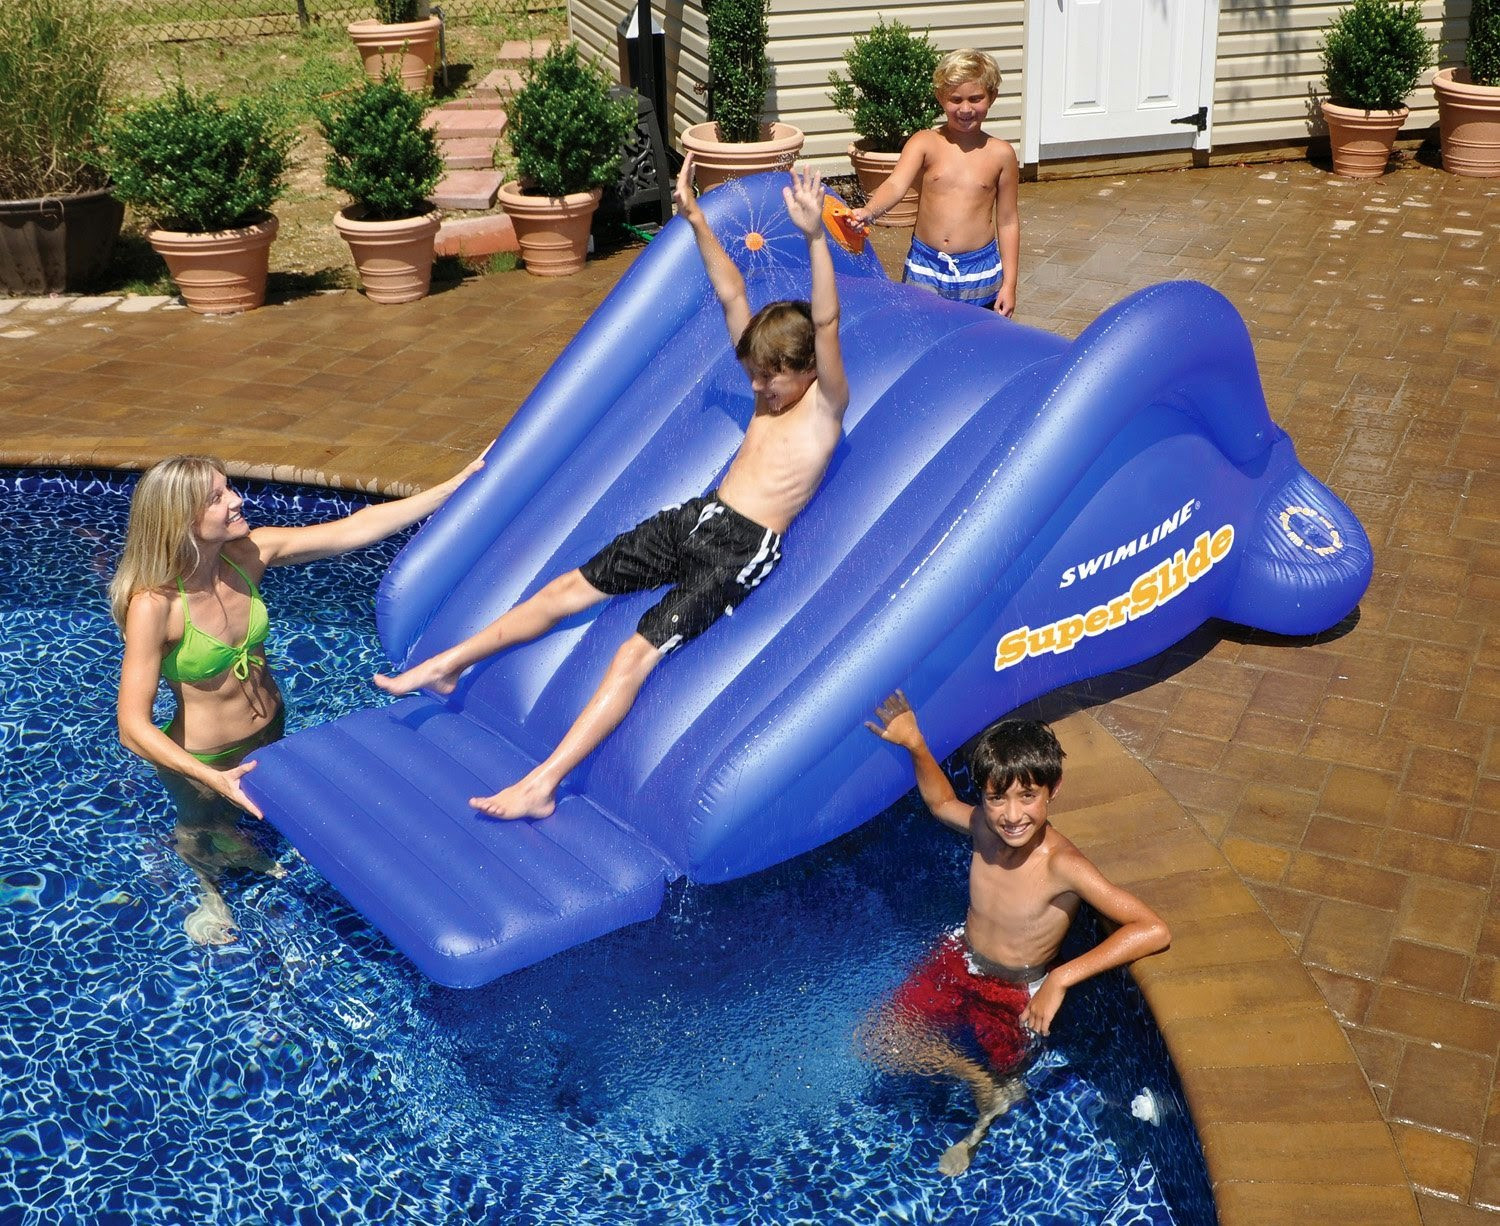 Best ideas about Inflatable Pool Slides For Inground Pools . Save or Pin inflatable pool slides inflatable pool slides for Now.